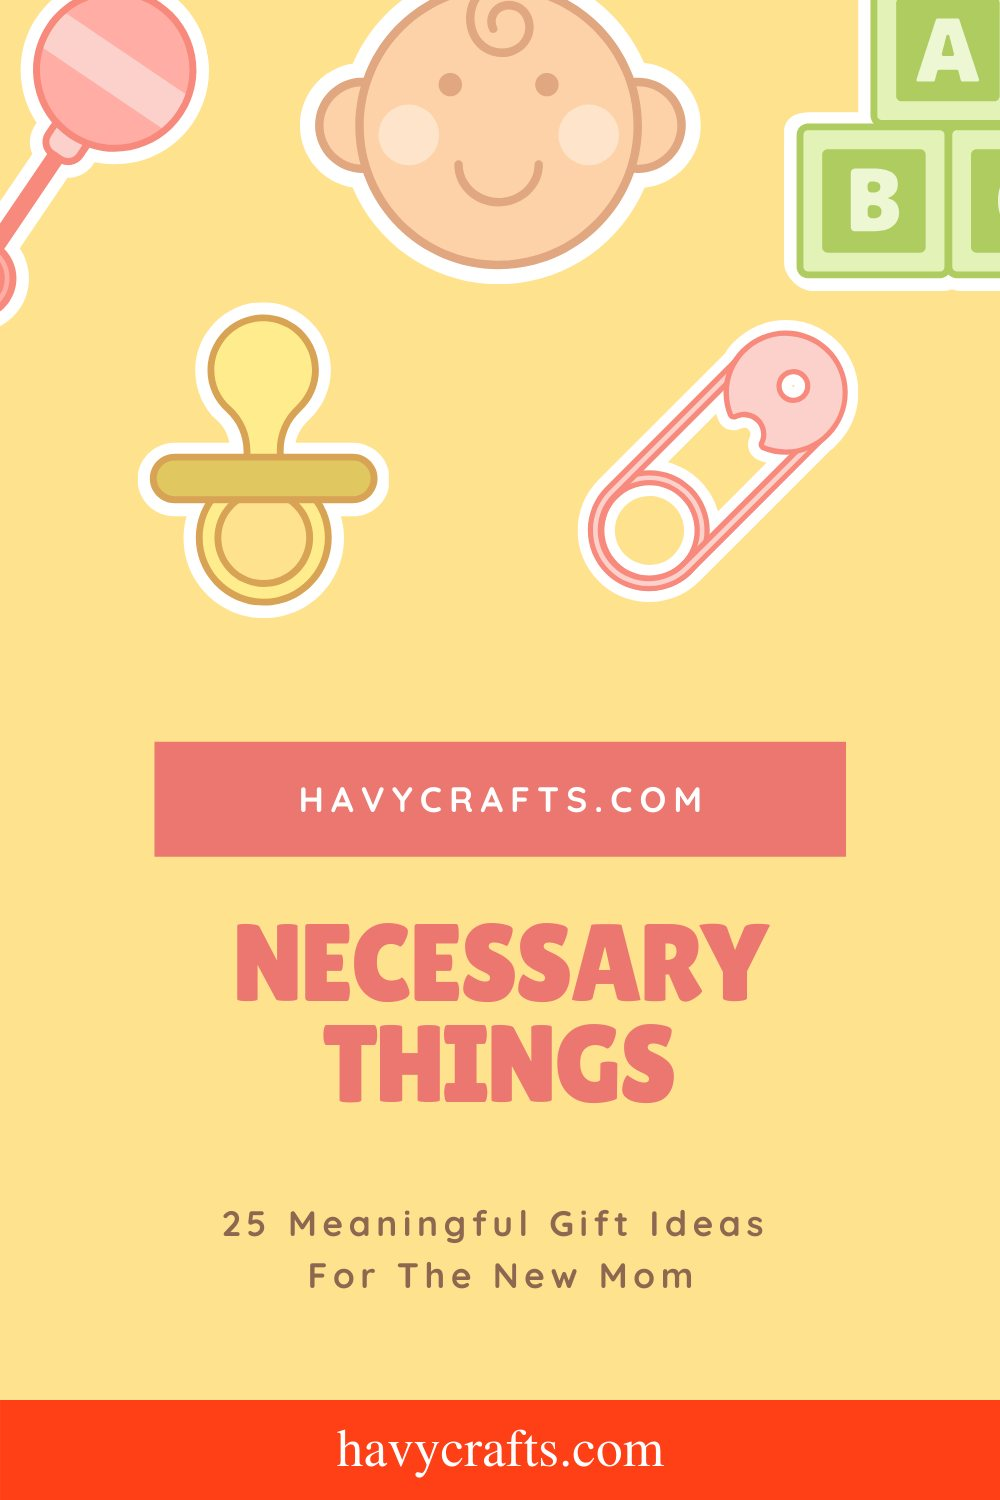 Necessary things for new moms